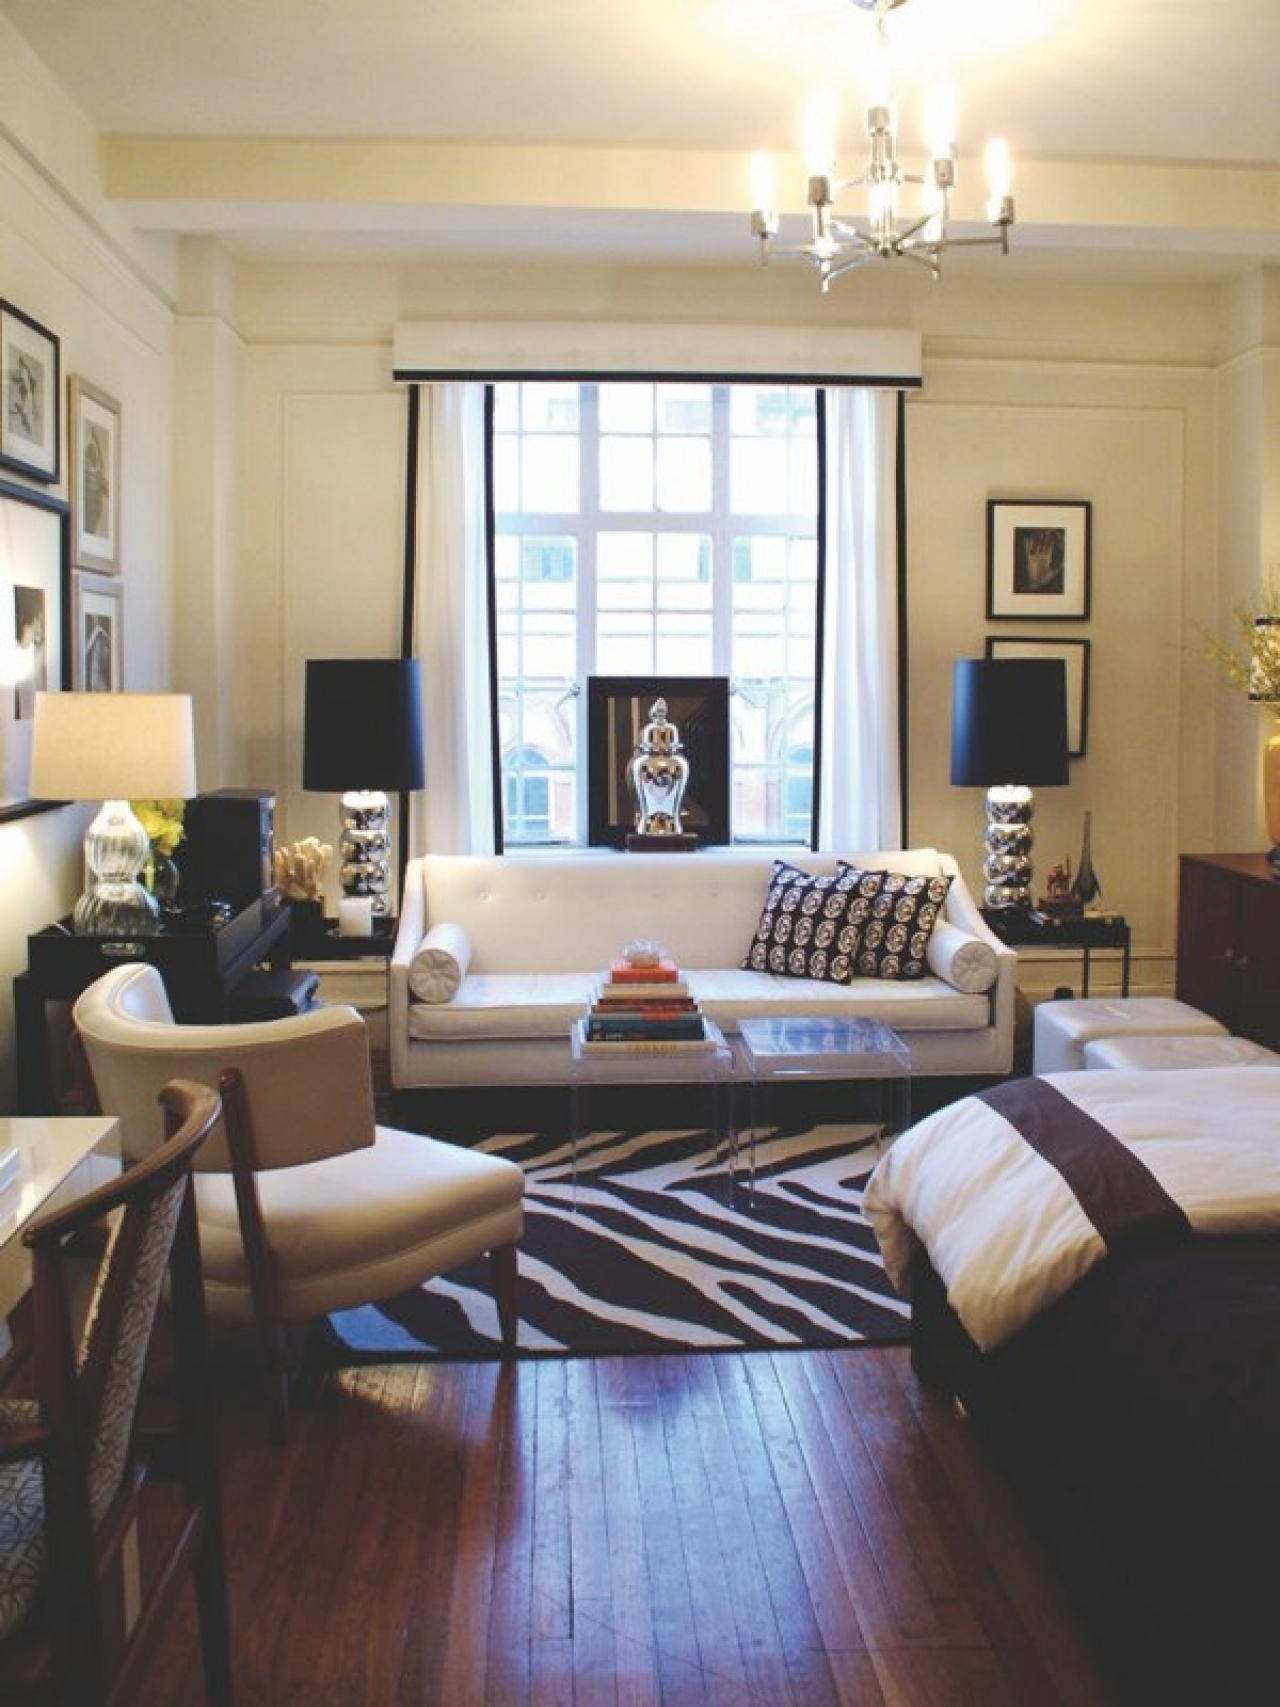 12 Design Ideas For Your Studio Apartment | Hgtv's Decorating inside Best Layout For Garden Woods Apartments Design Ideas